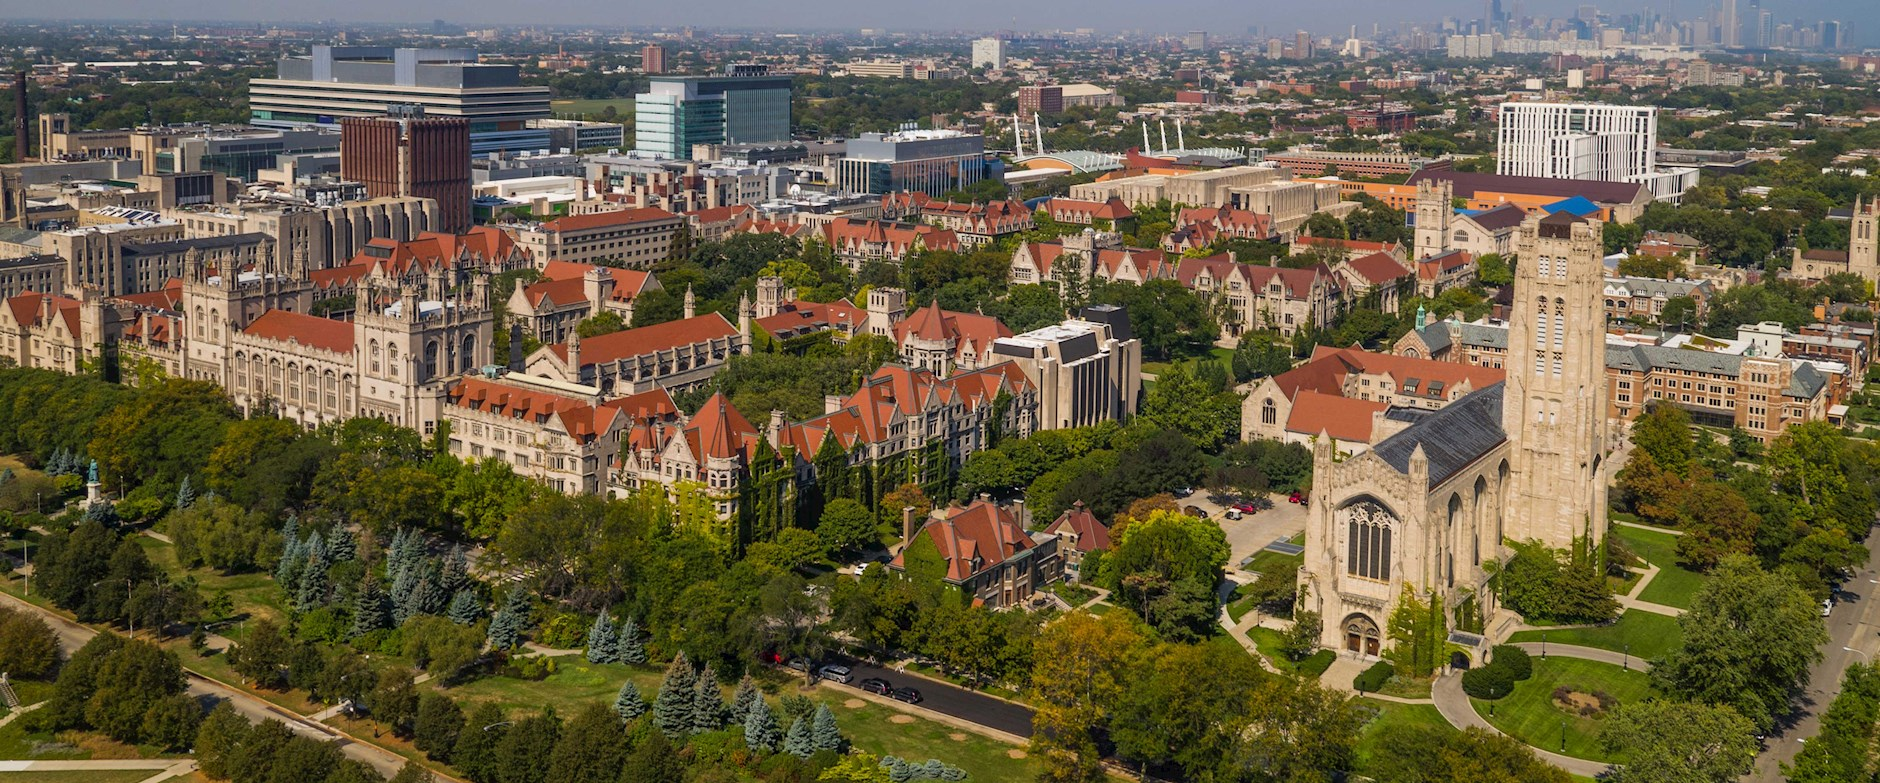 University of Chicago campus drone shot